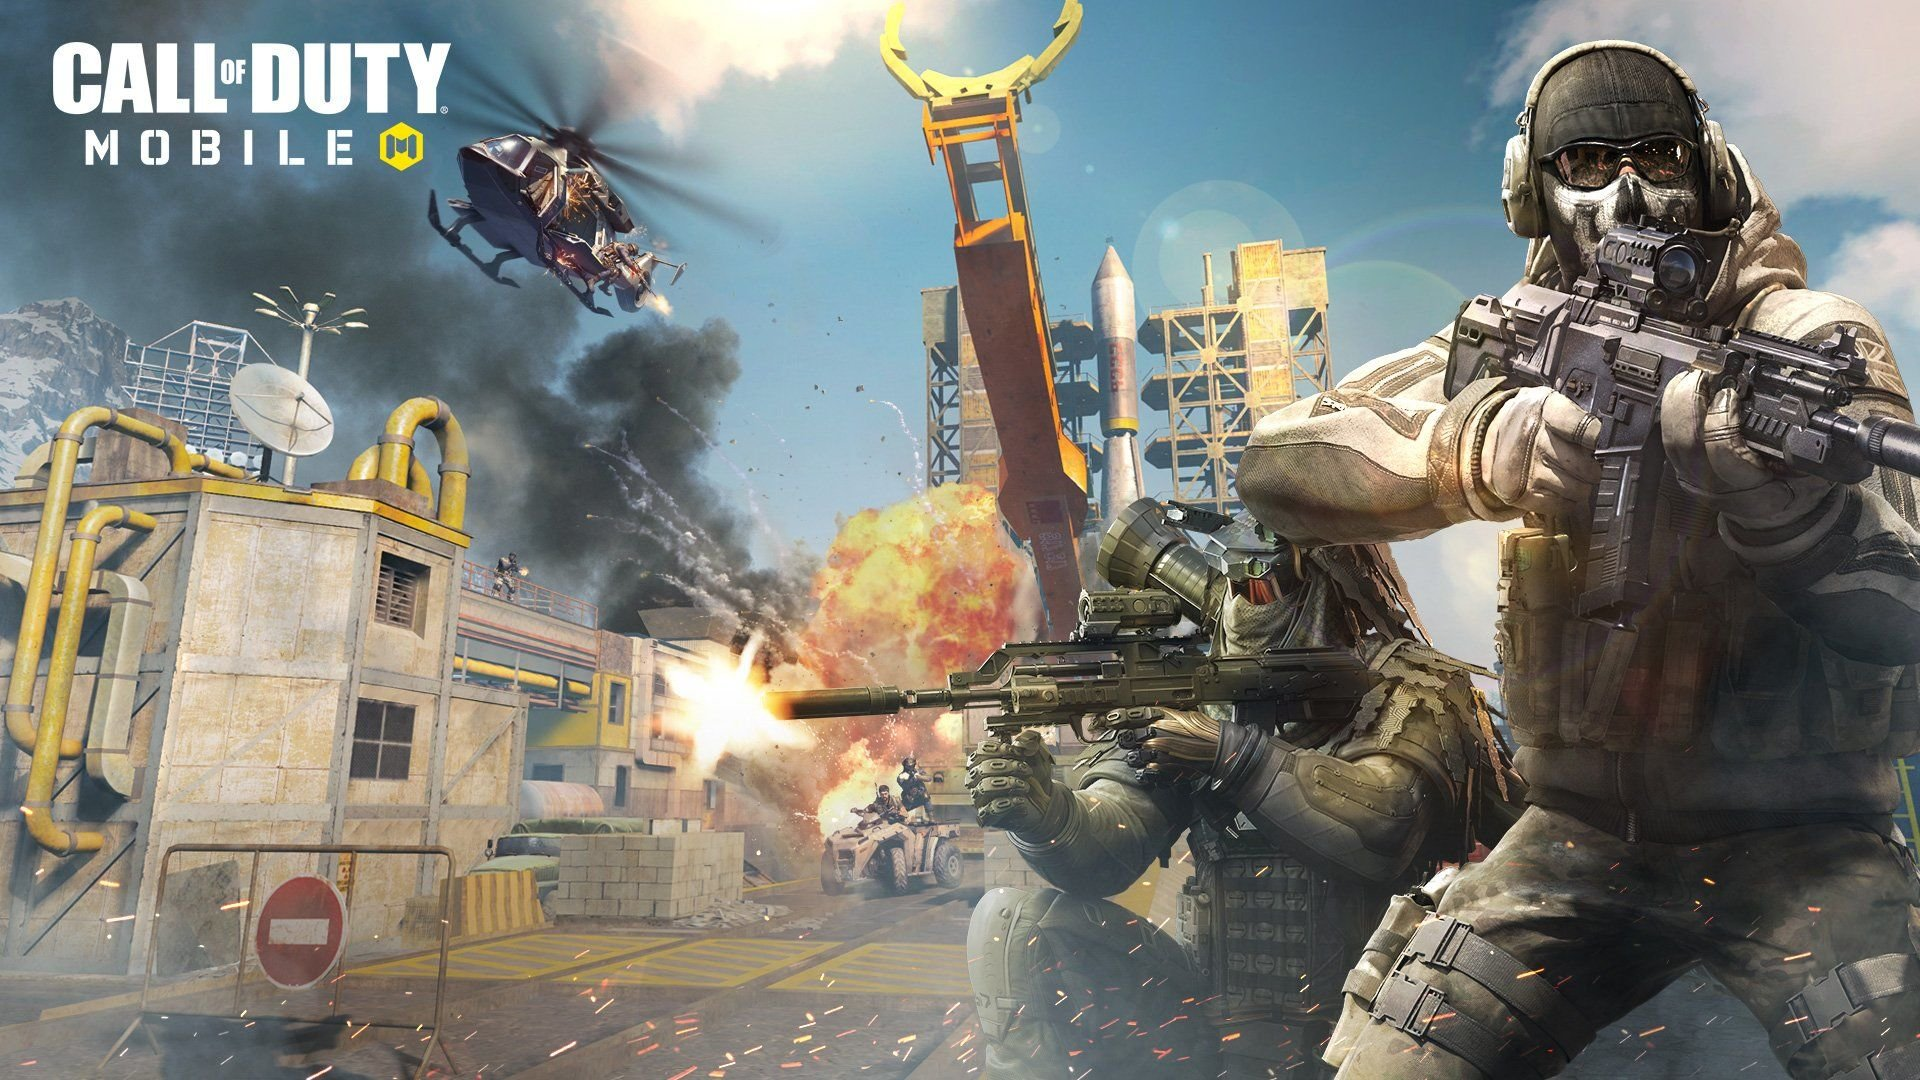 Imagem do Call of Duty: Mobile